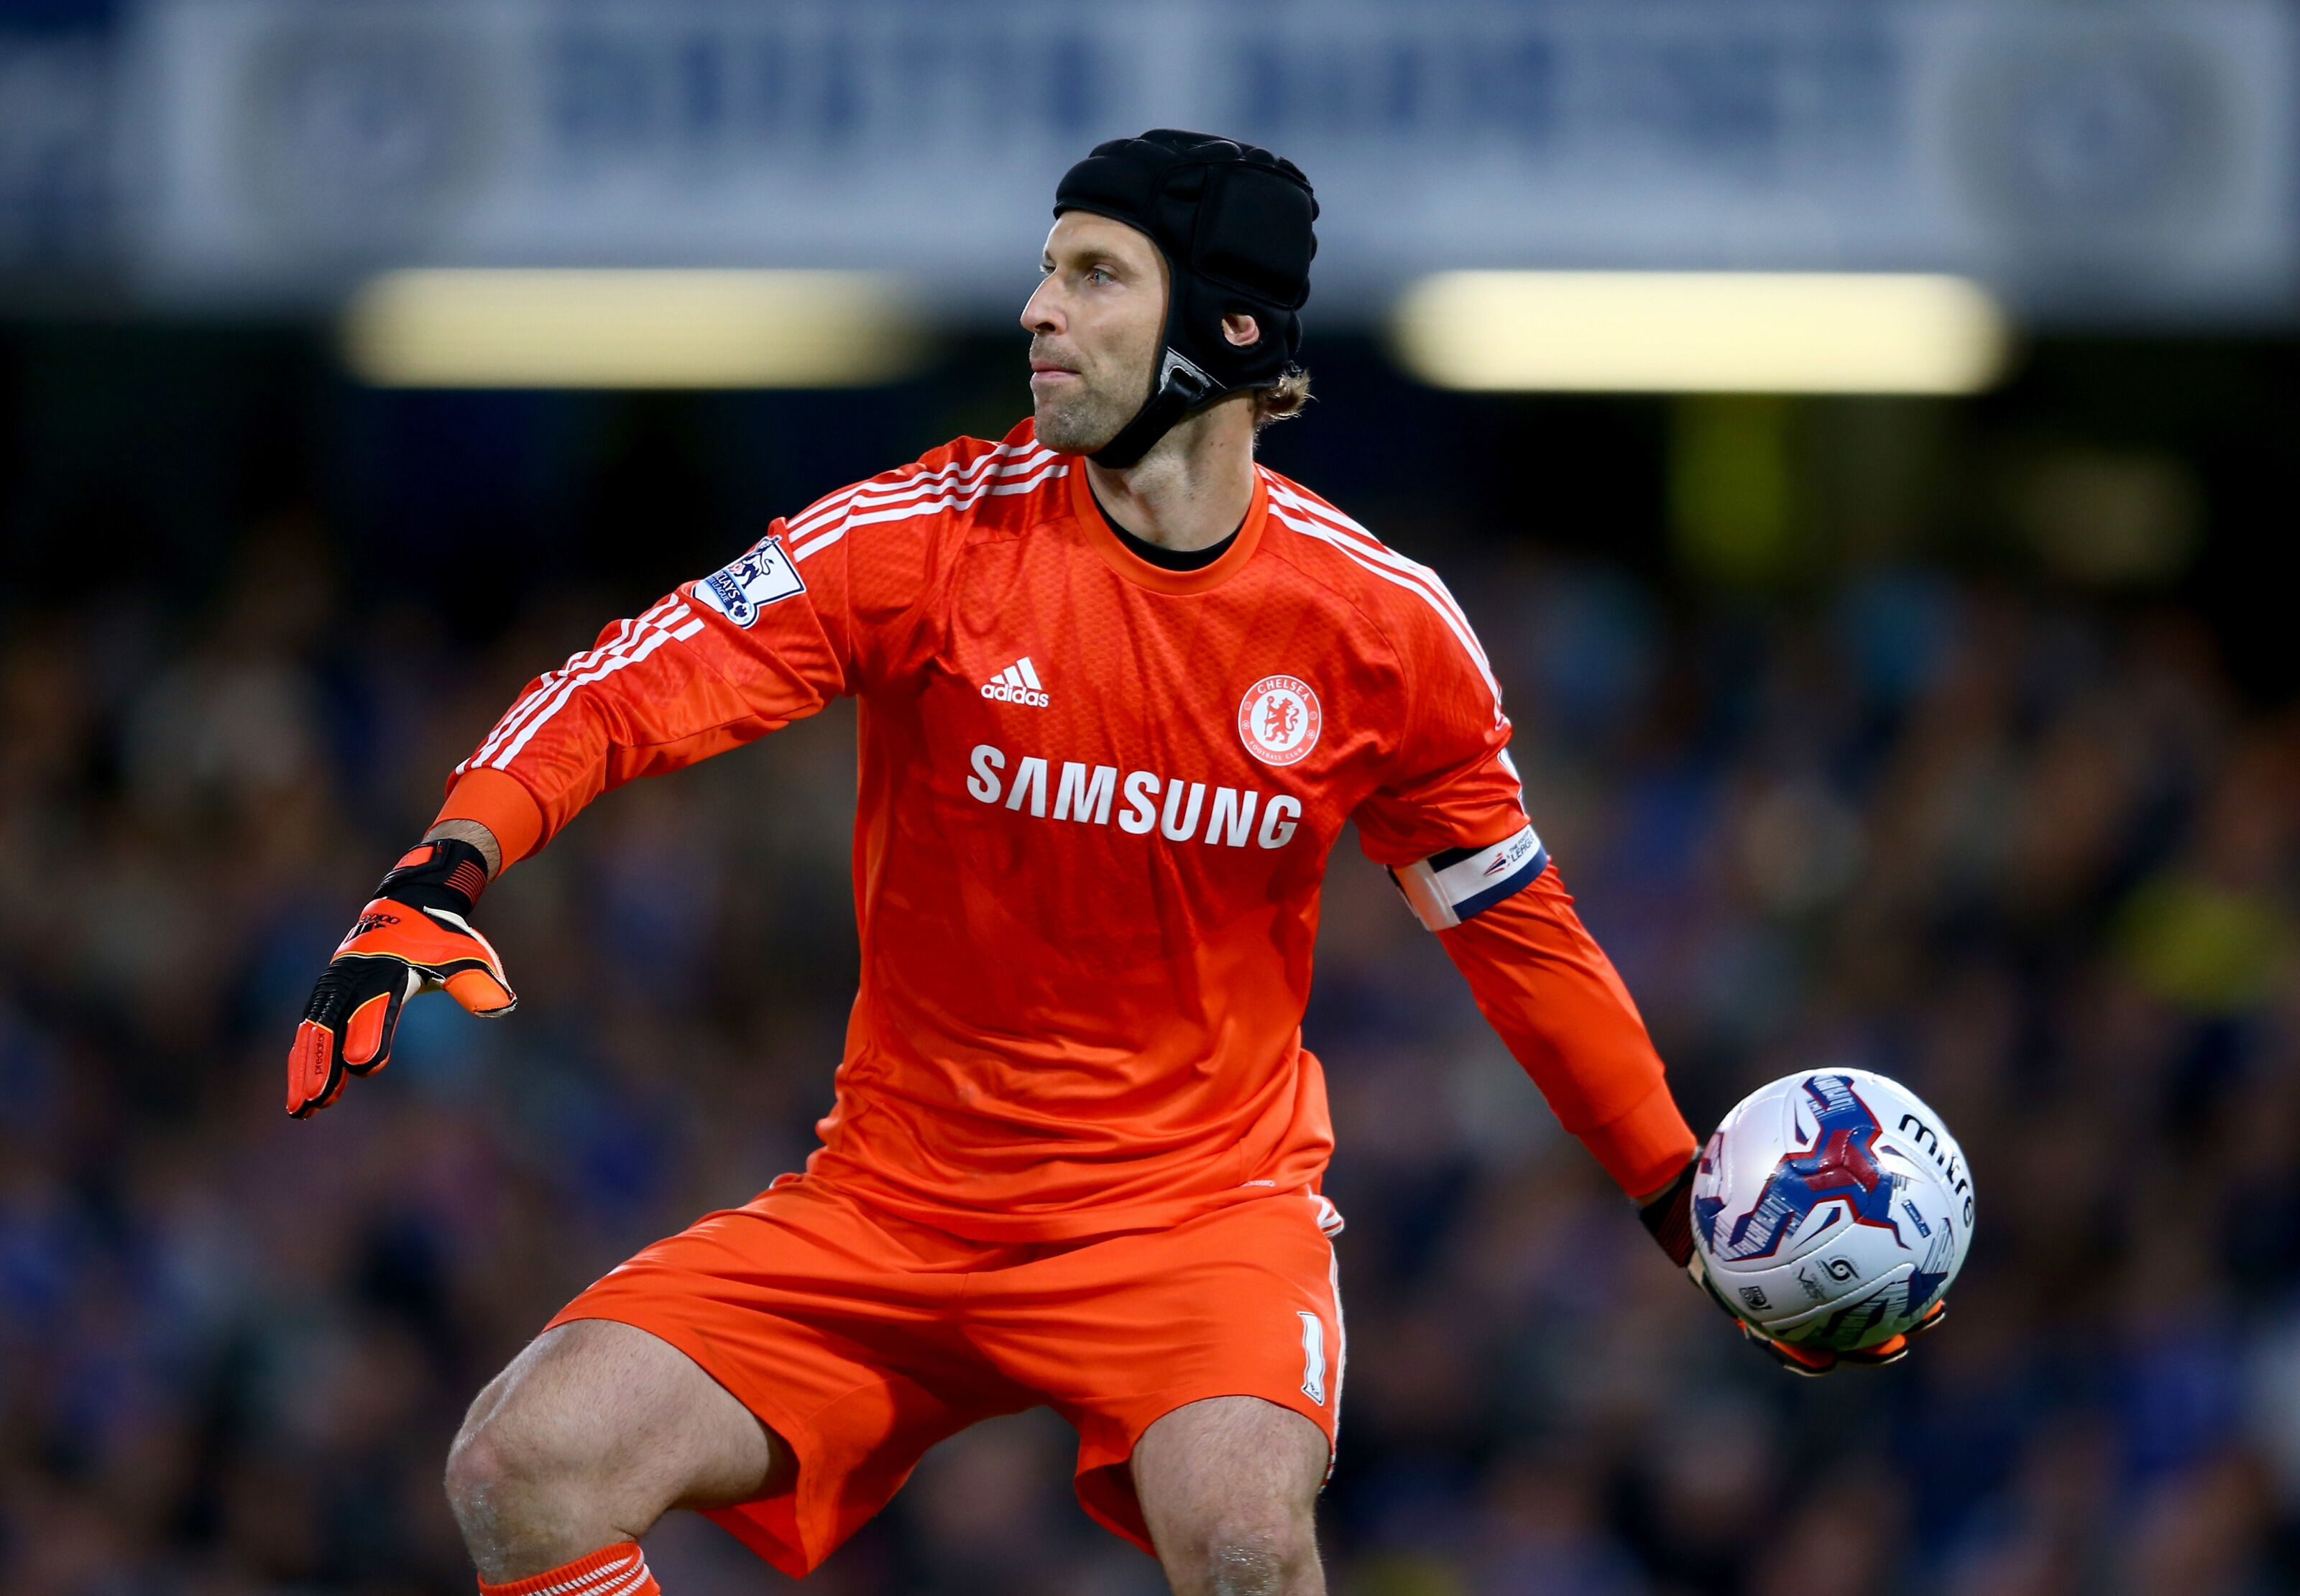 Author, singer, artists, footballers: Chelsea players' off-pitch talents and pursuits